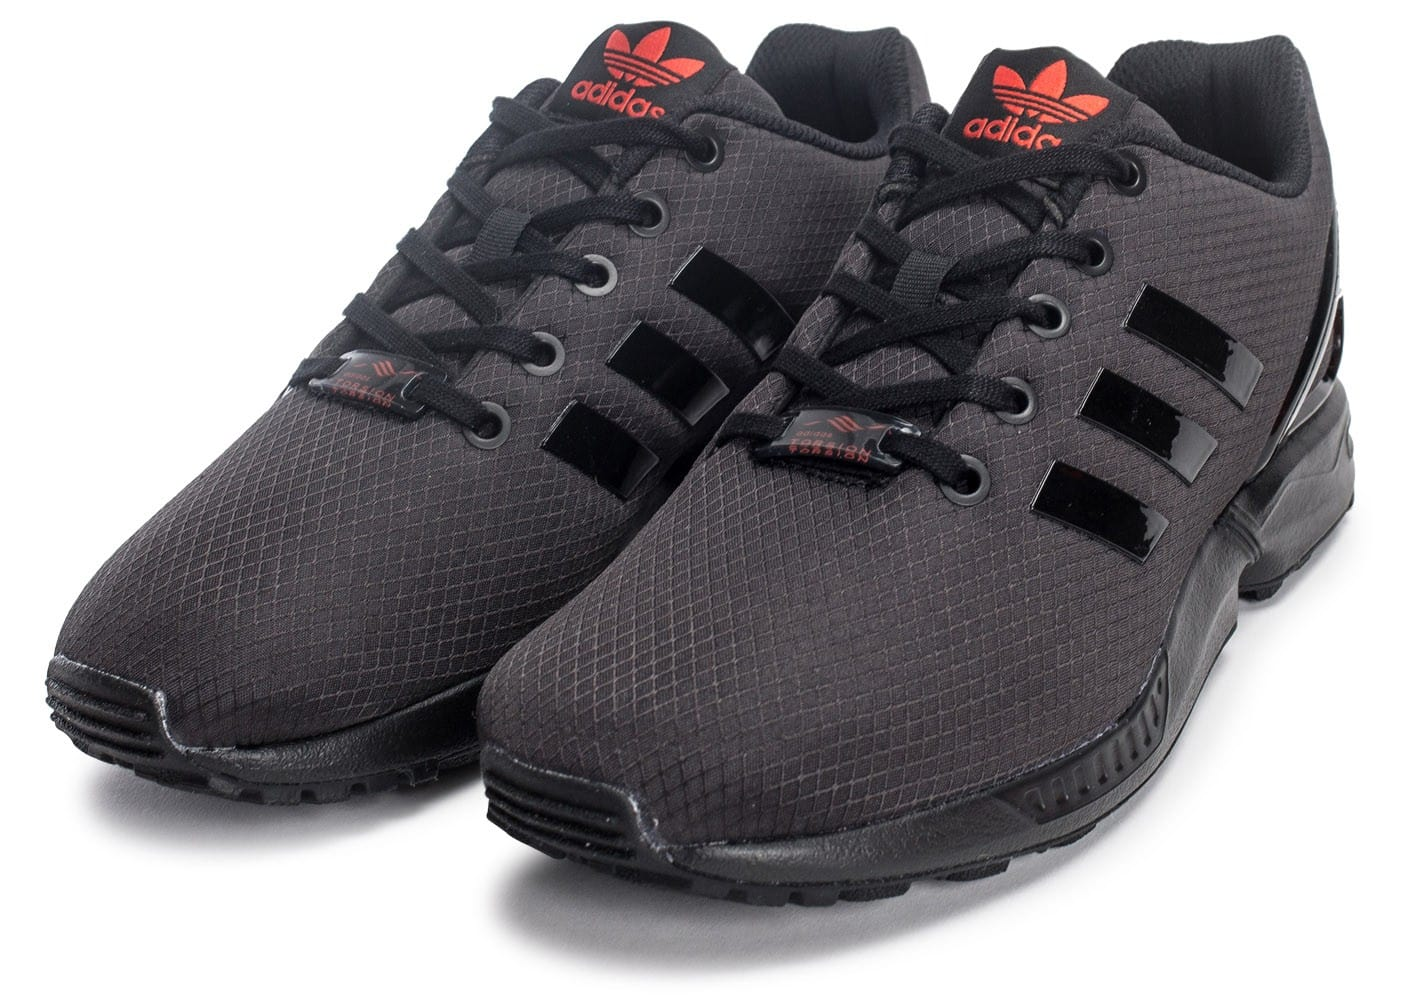 adidas zx flux ripstop buy clothes